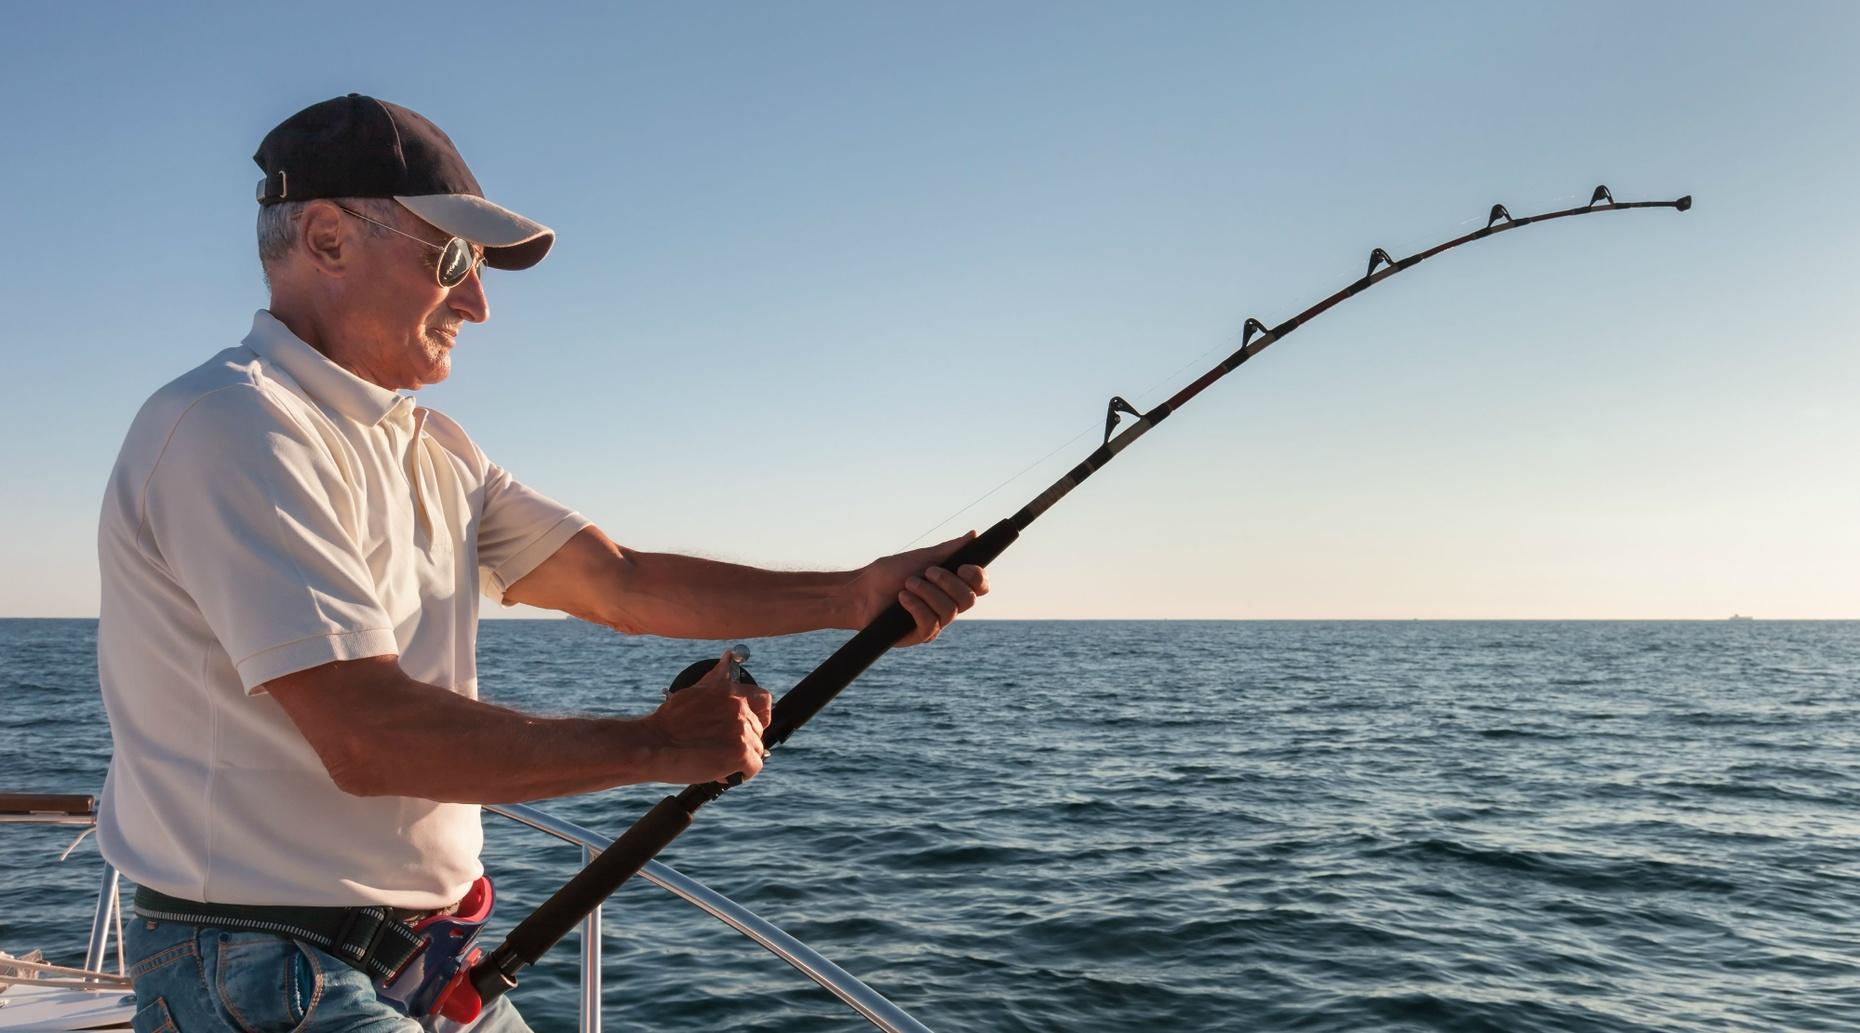 6-Hour Private Fishing Charter in Cancun